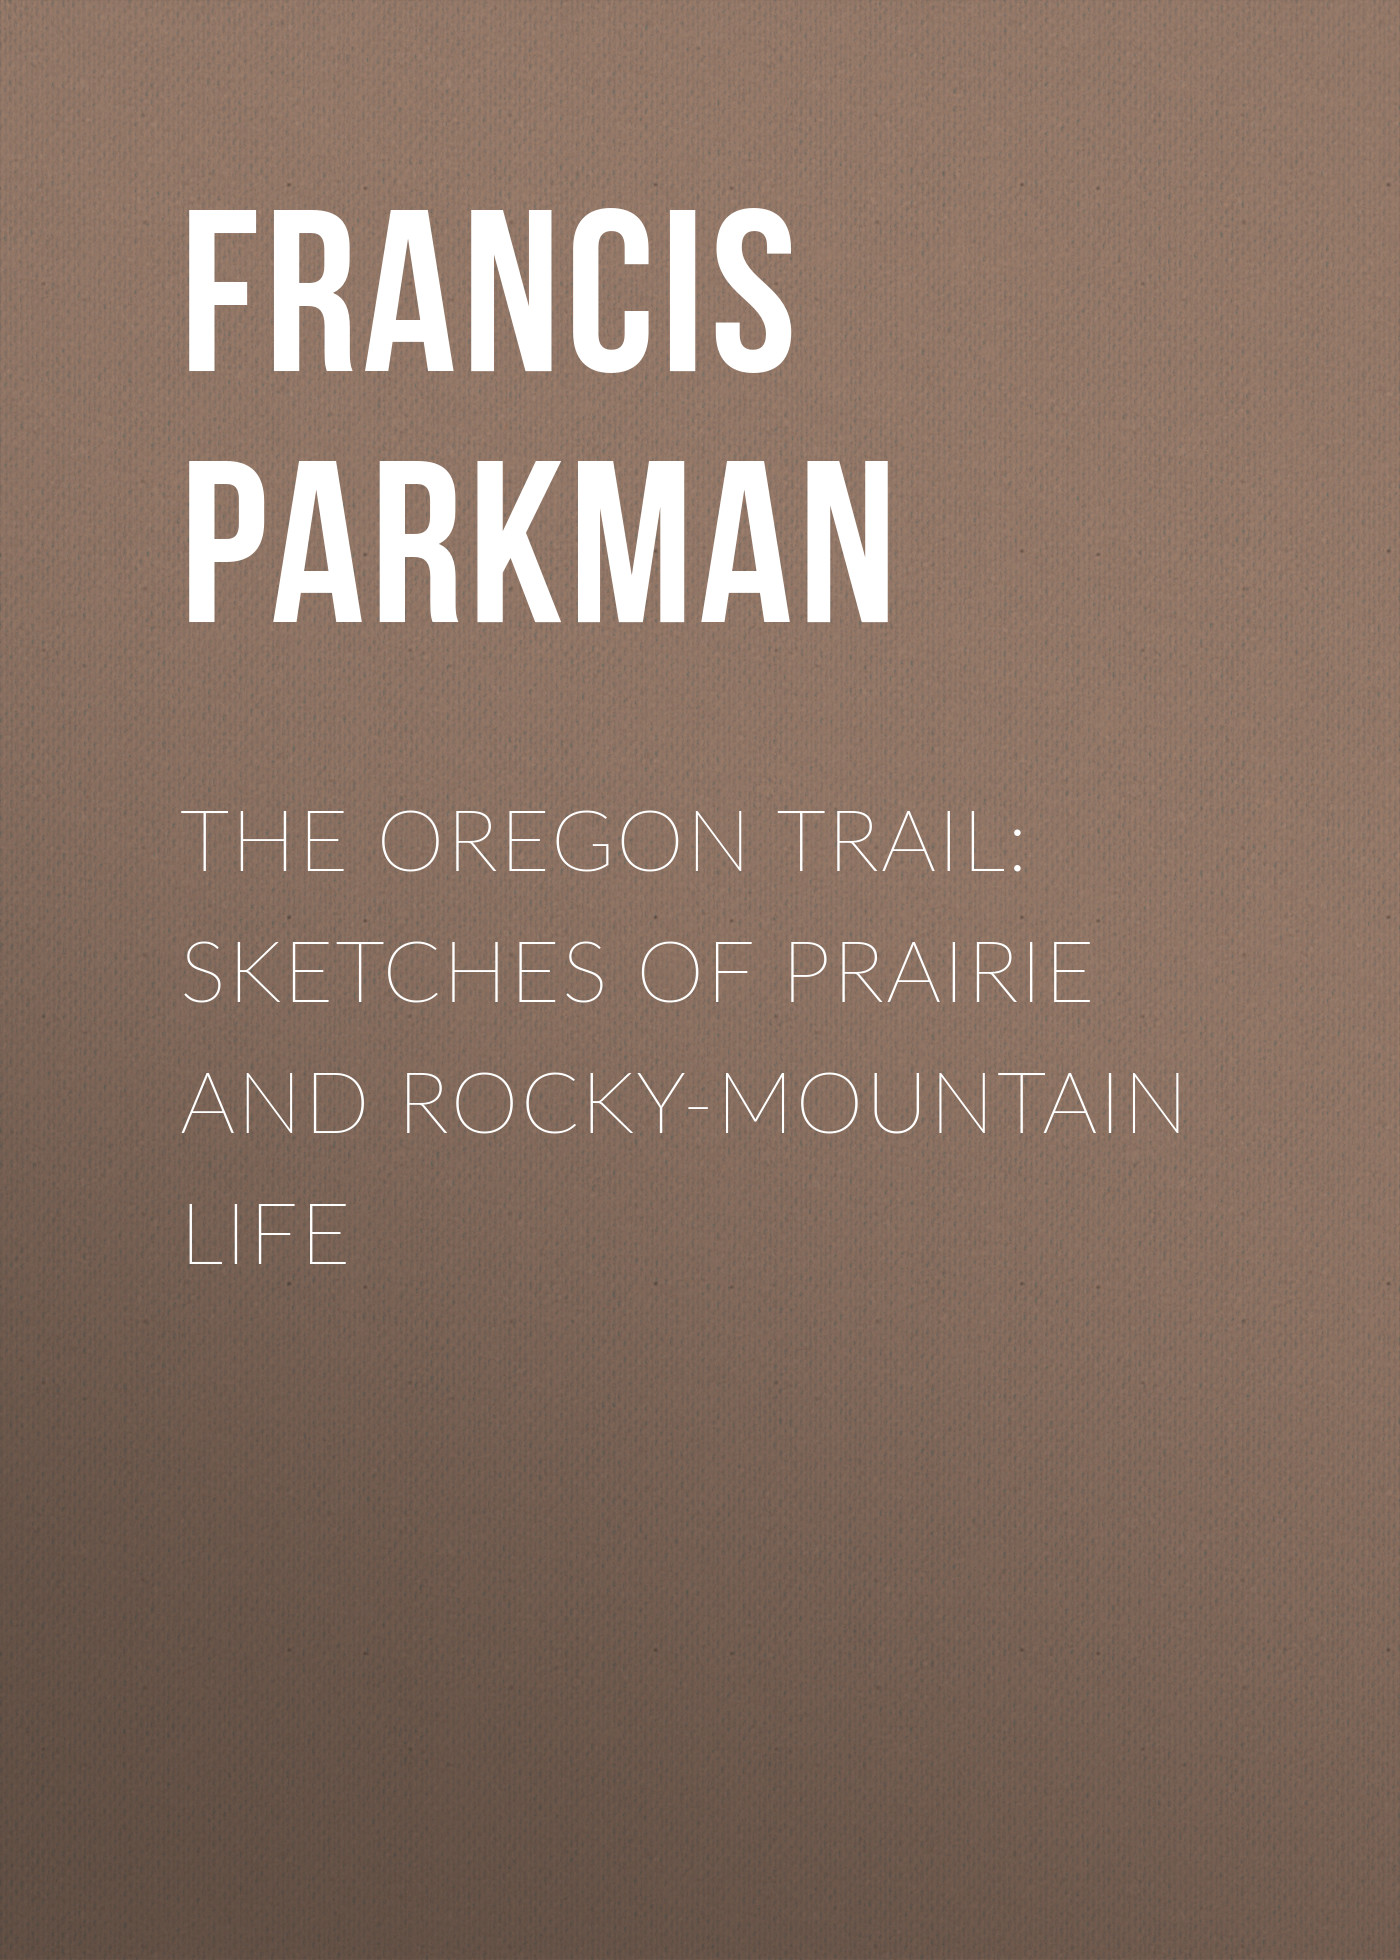 Francis Parkman The Oregon Trail: Sketches of Prairie and Rocky-Mountain Life sketches in lavender blue and green